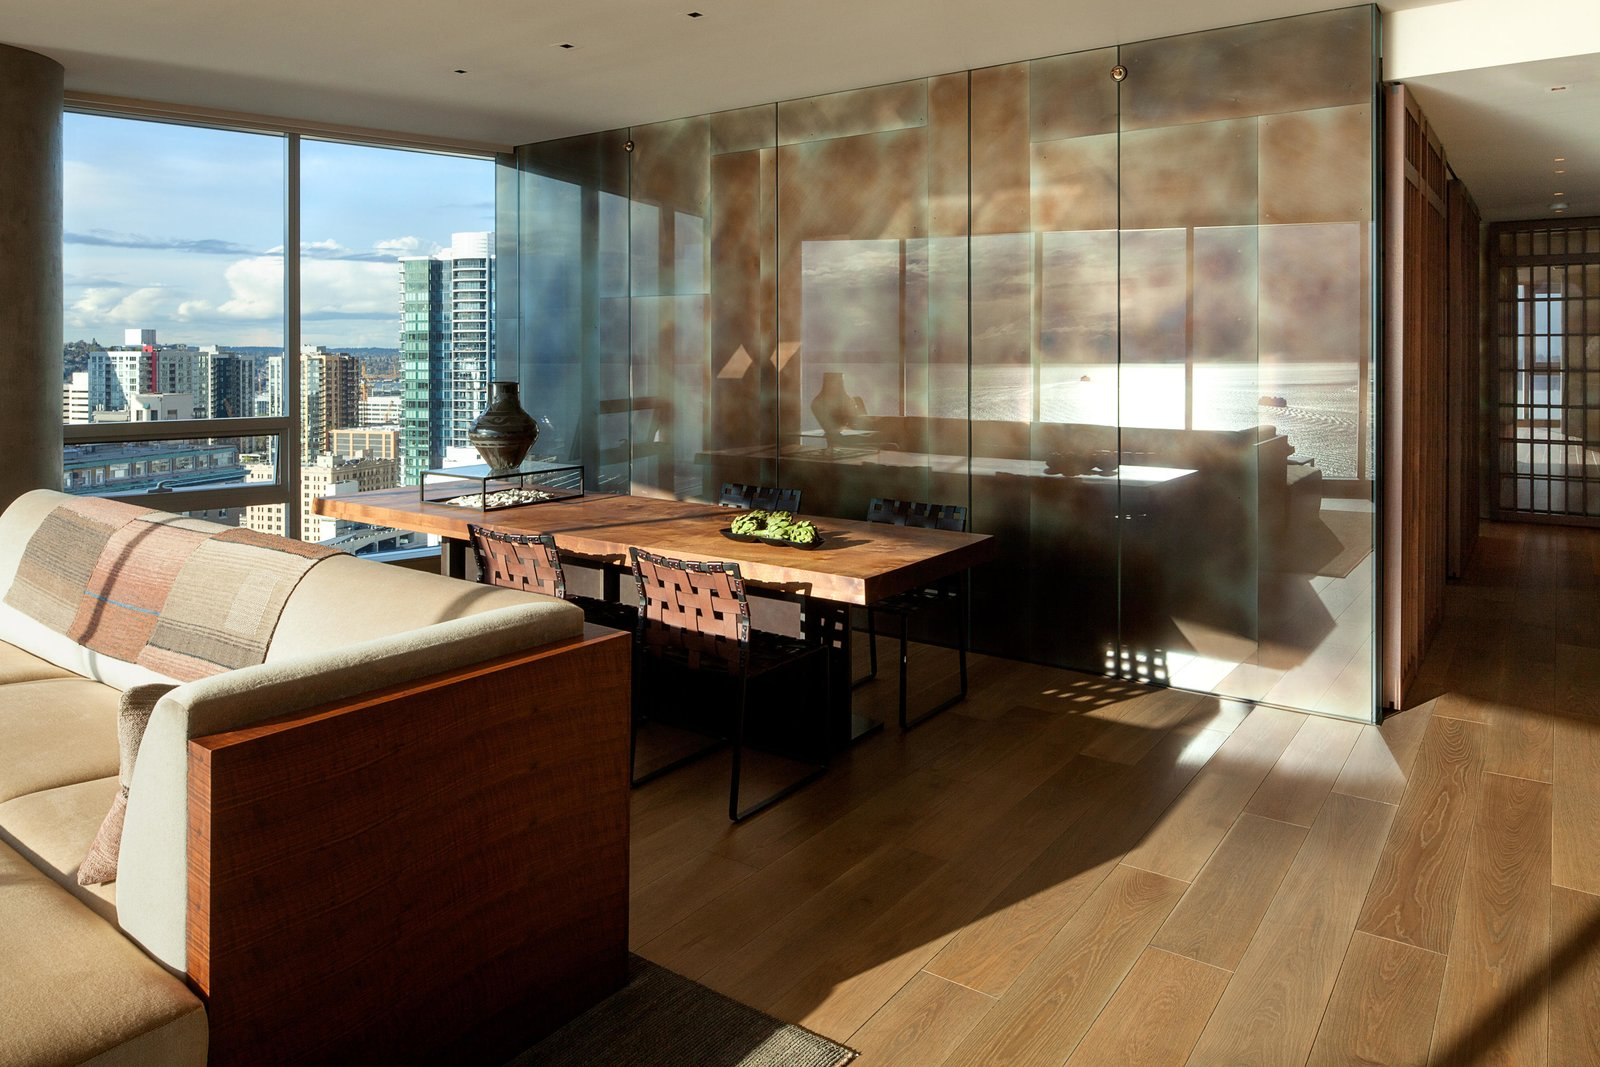 Dining Room, Chair, and Table Haven of Reflection | Olson Kundig  Haven of Reflection by Olson Kundig